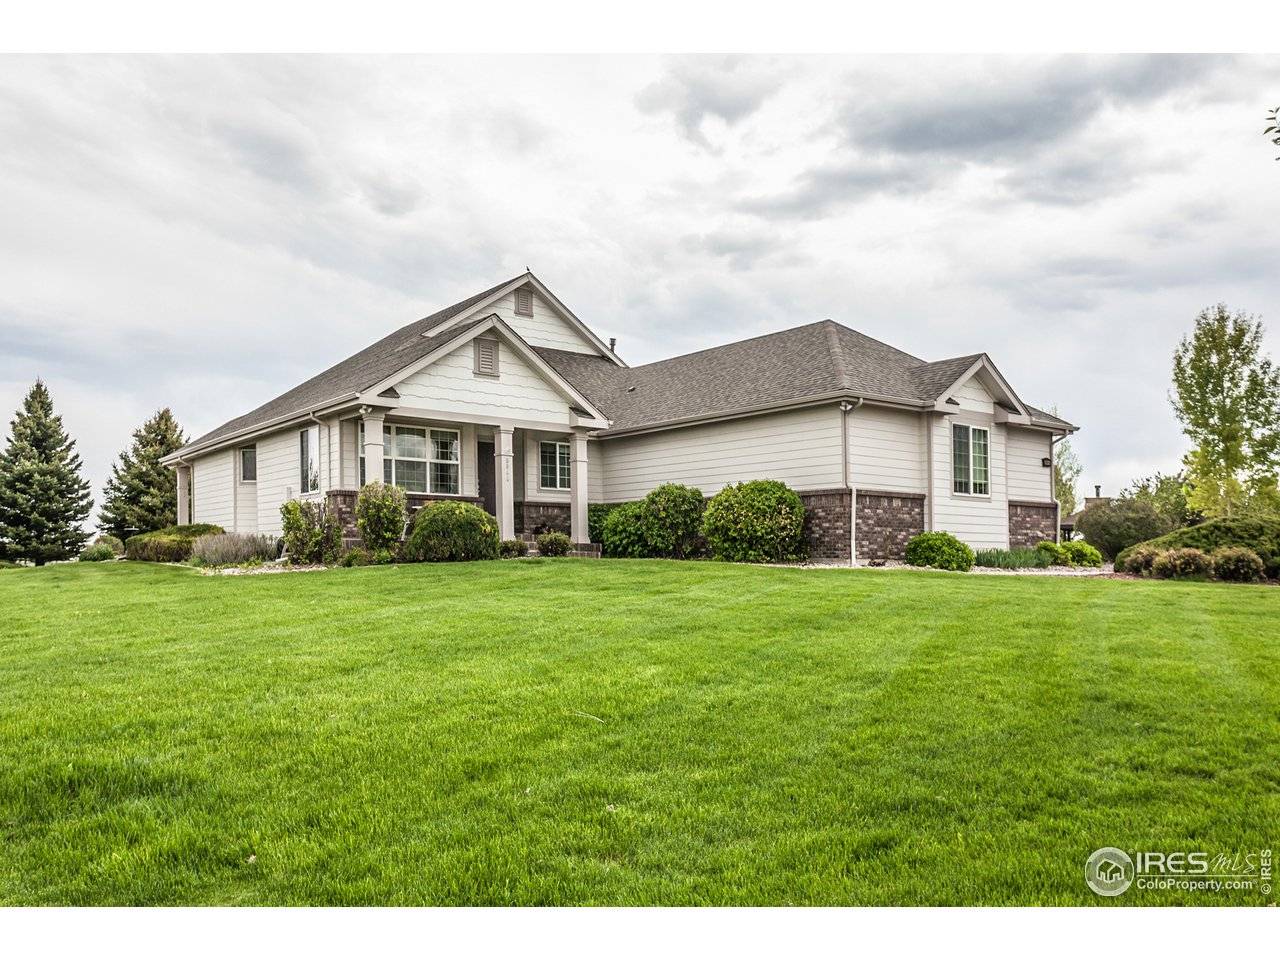 8844 Longs Peak Cir, Windsor CO 80550